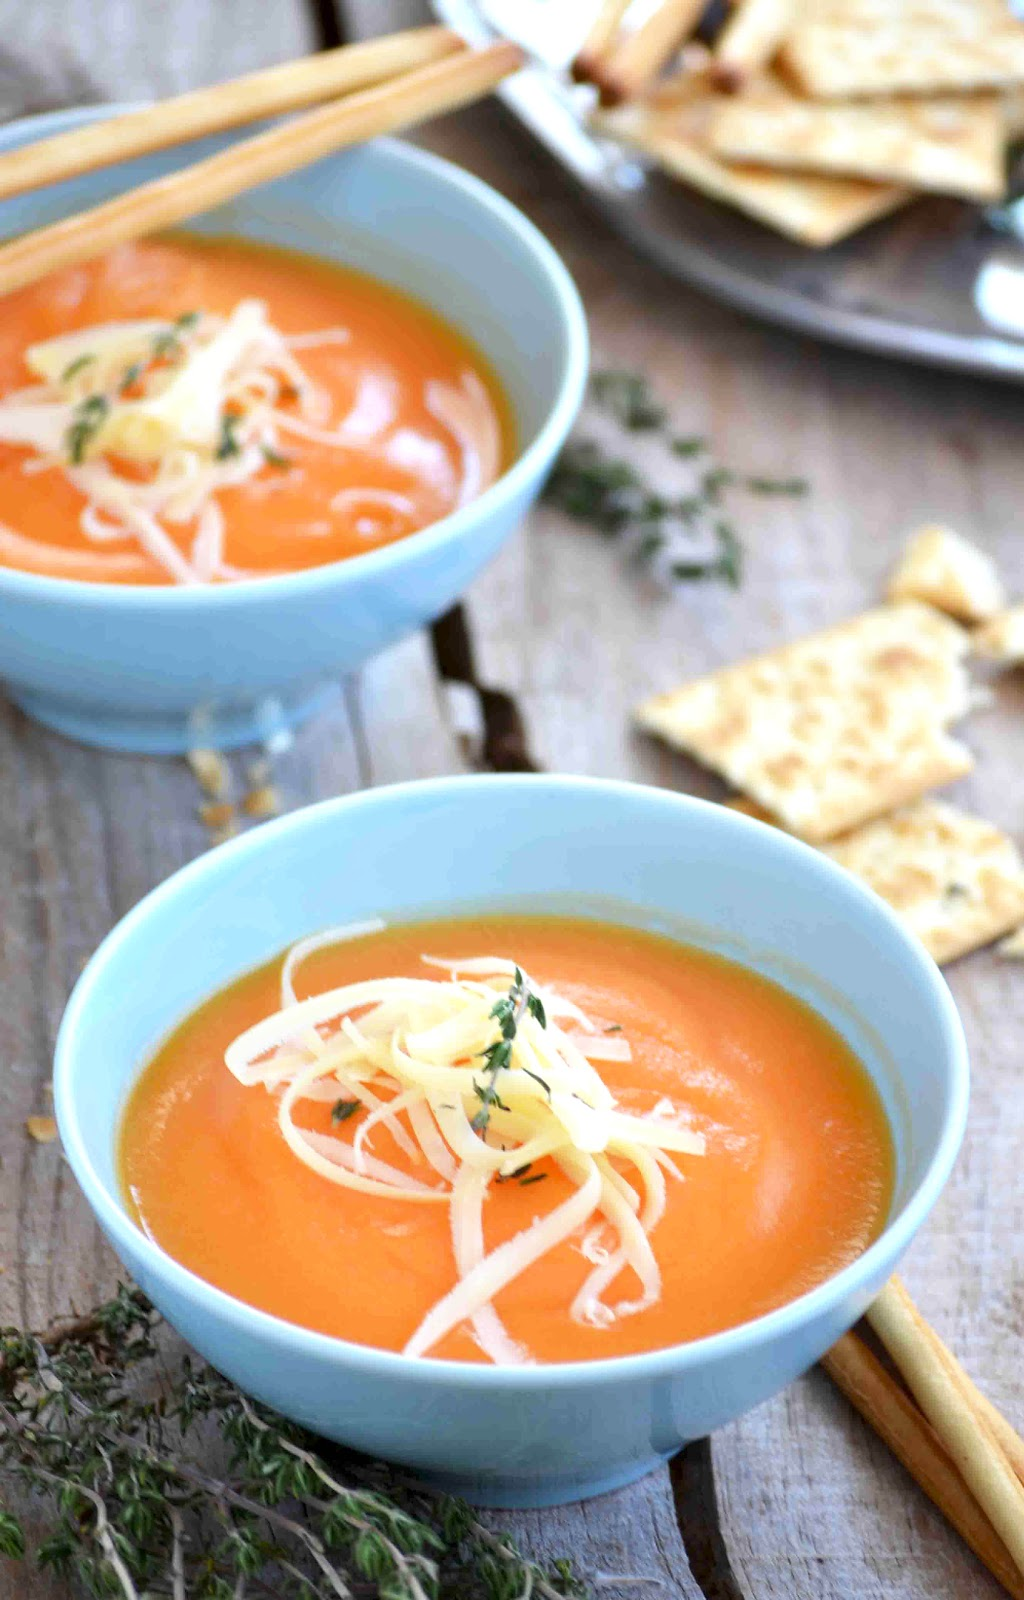 Bread & oil: My cream of carrot soup